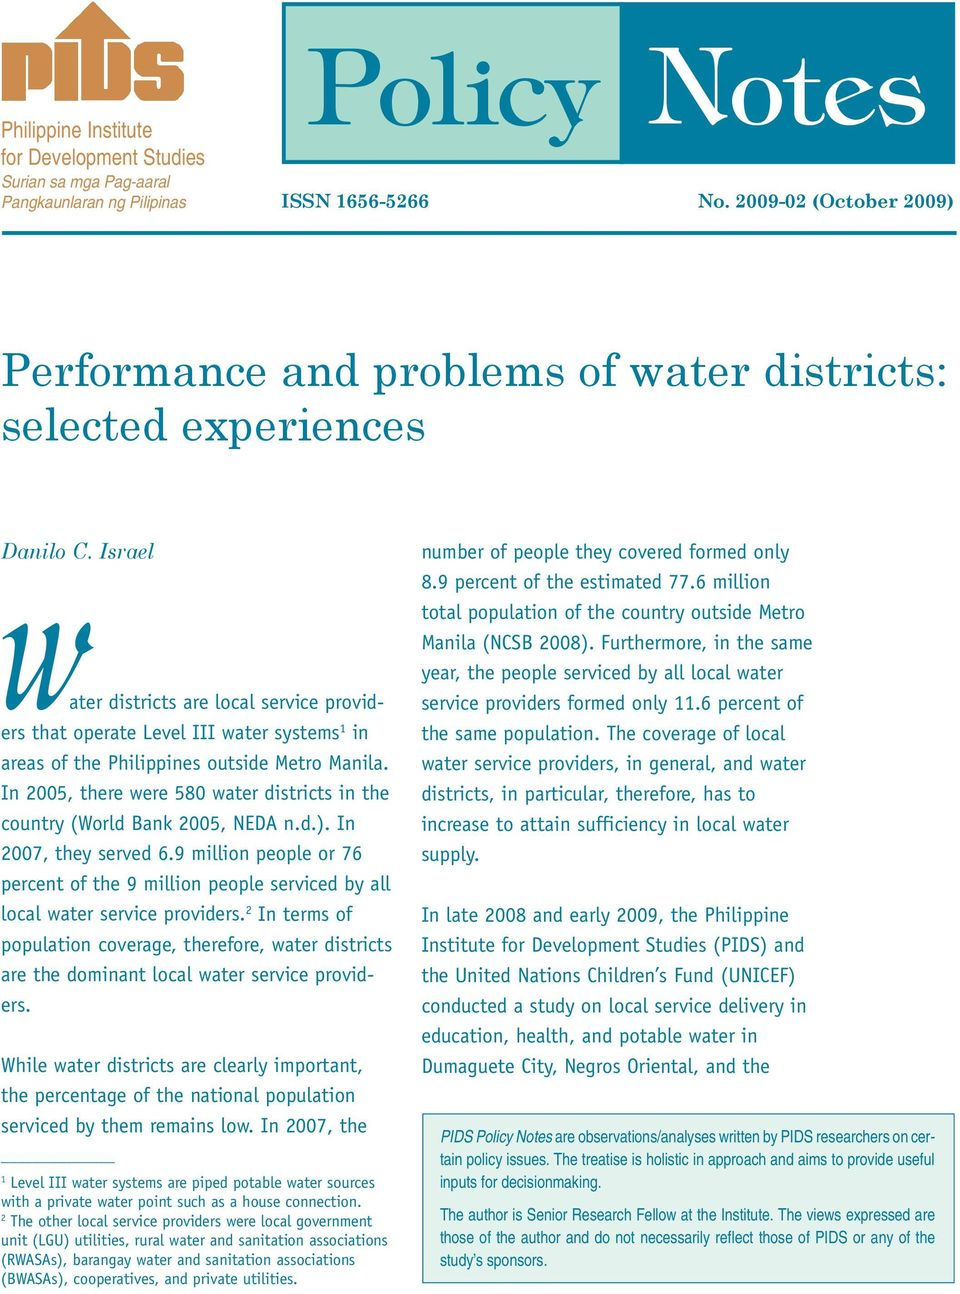 Israel Water districts are local service providers that operate Level III water systems 1 in areas of the Philippines outside Metro Manila.